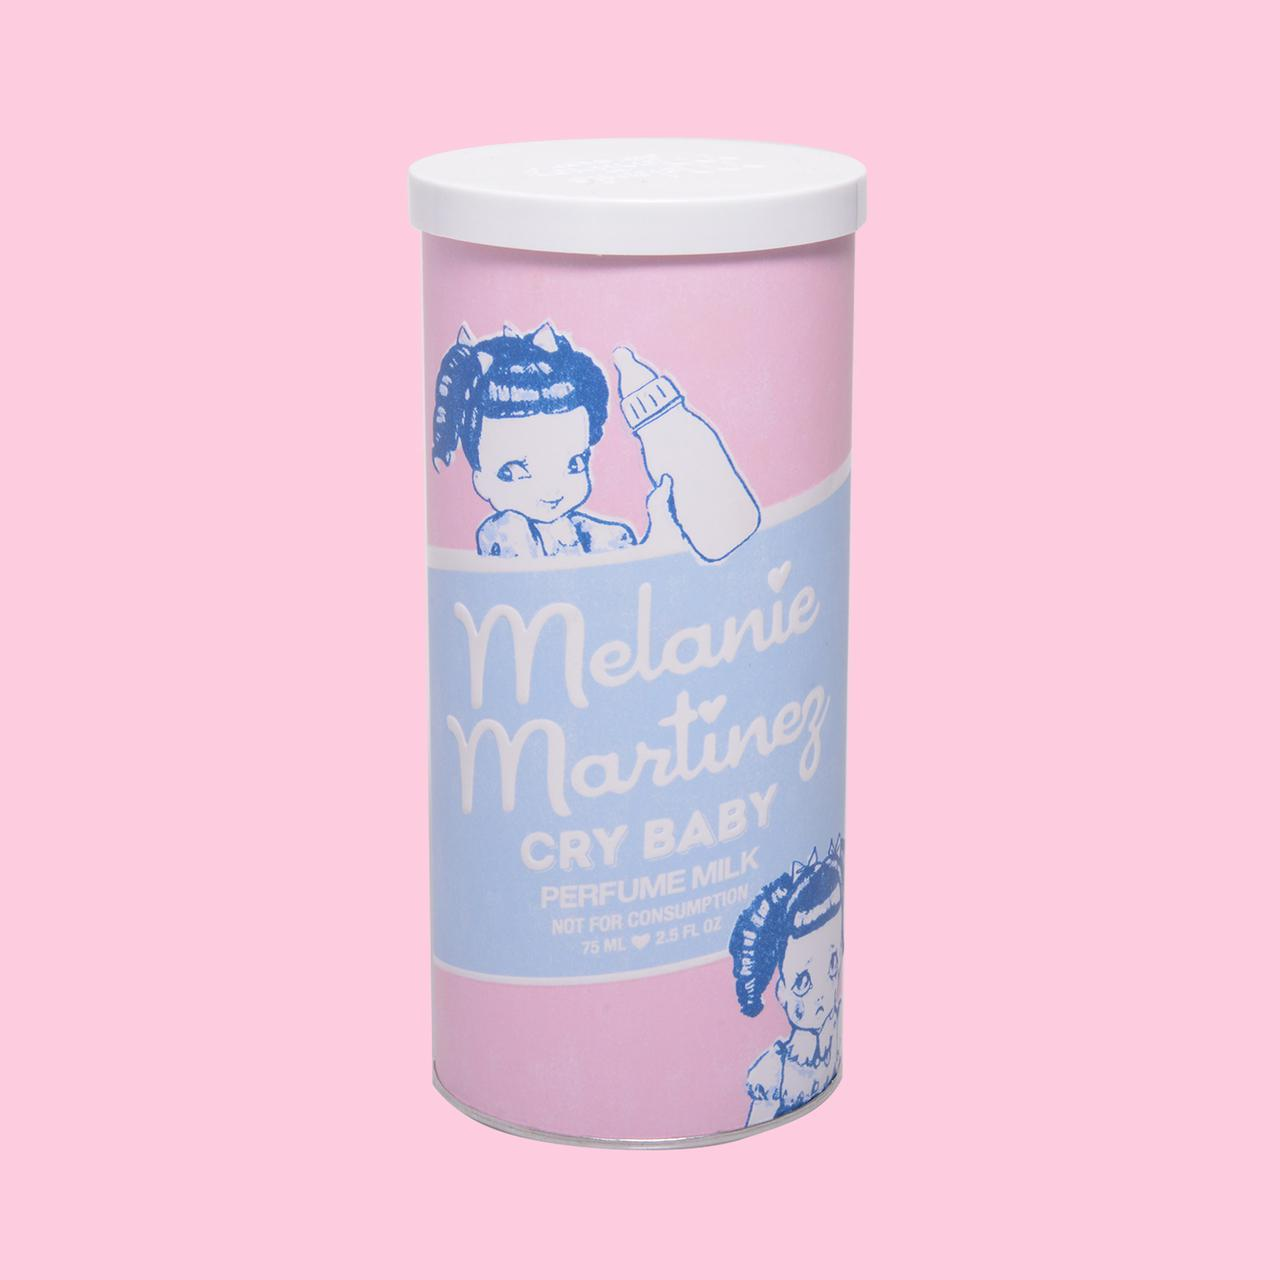 Melanie Martinez Cry Baby Perfume Milk 2 5 Oz